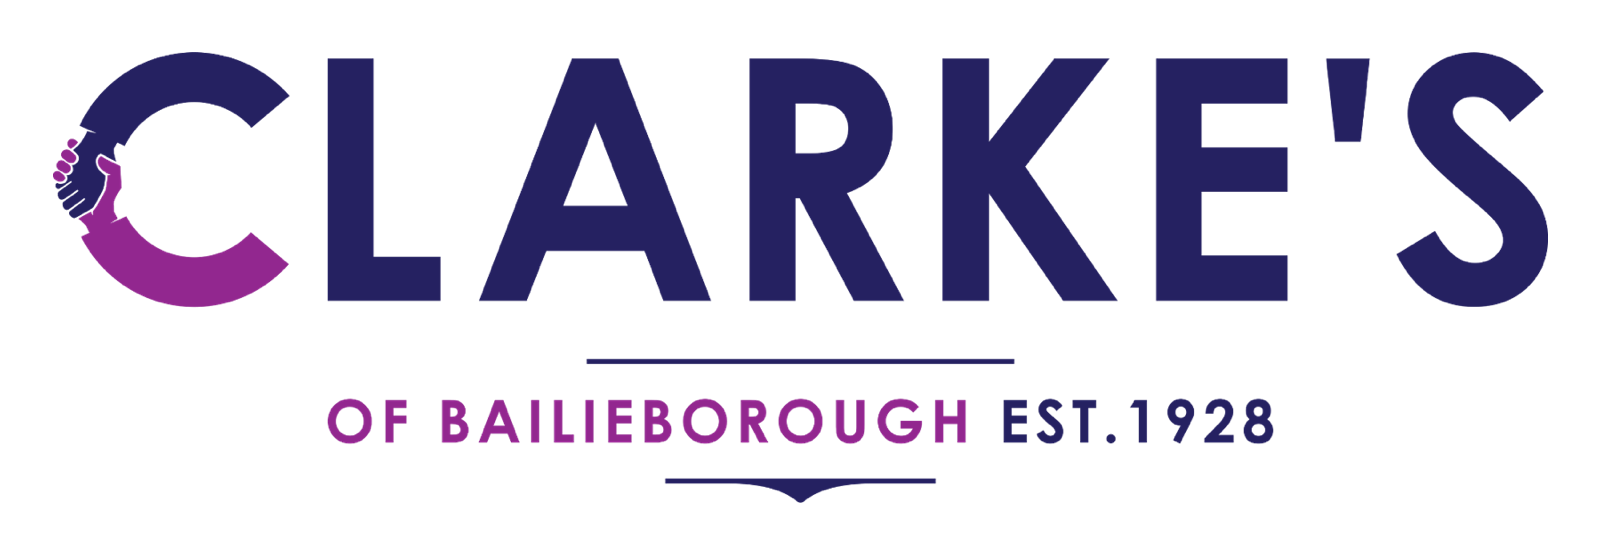 Clarkes Department Store Logo